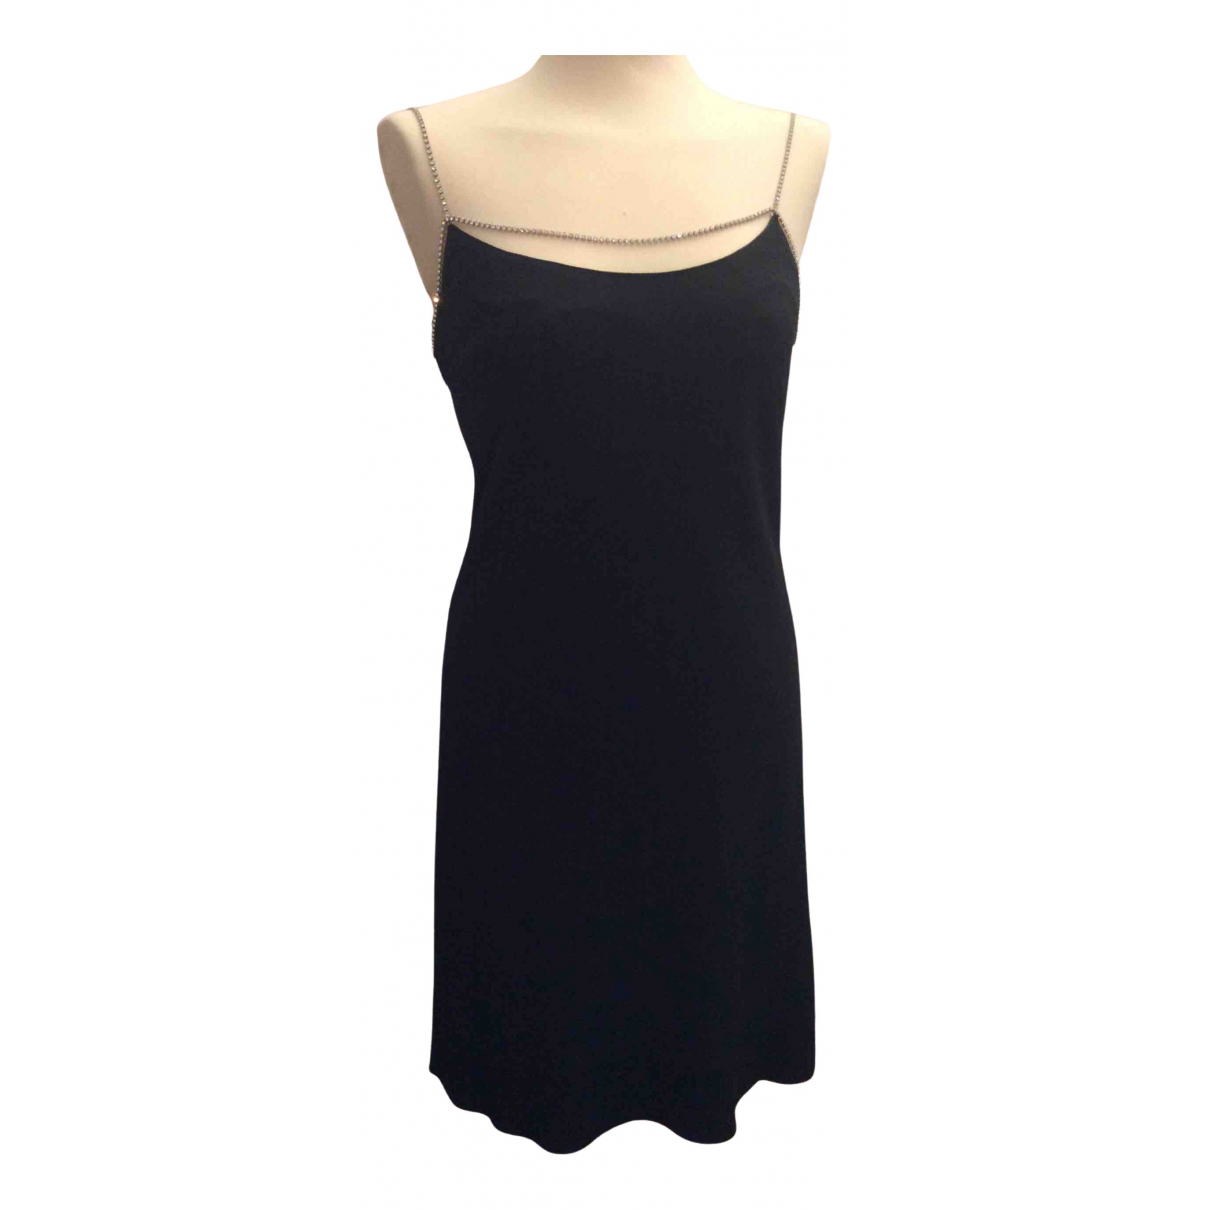 Moschino Cheap And Chic N Black dress for Women 42 IT